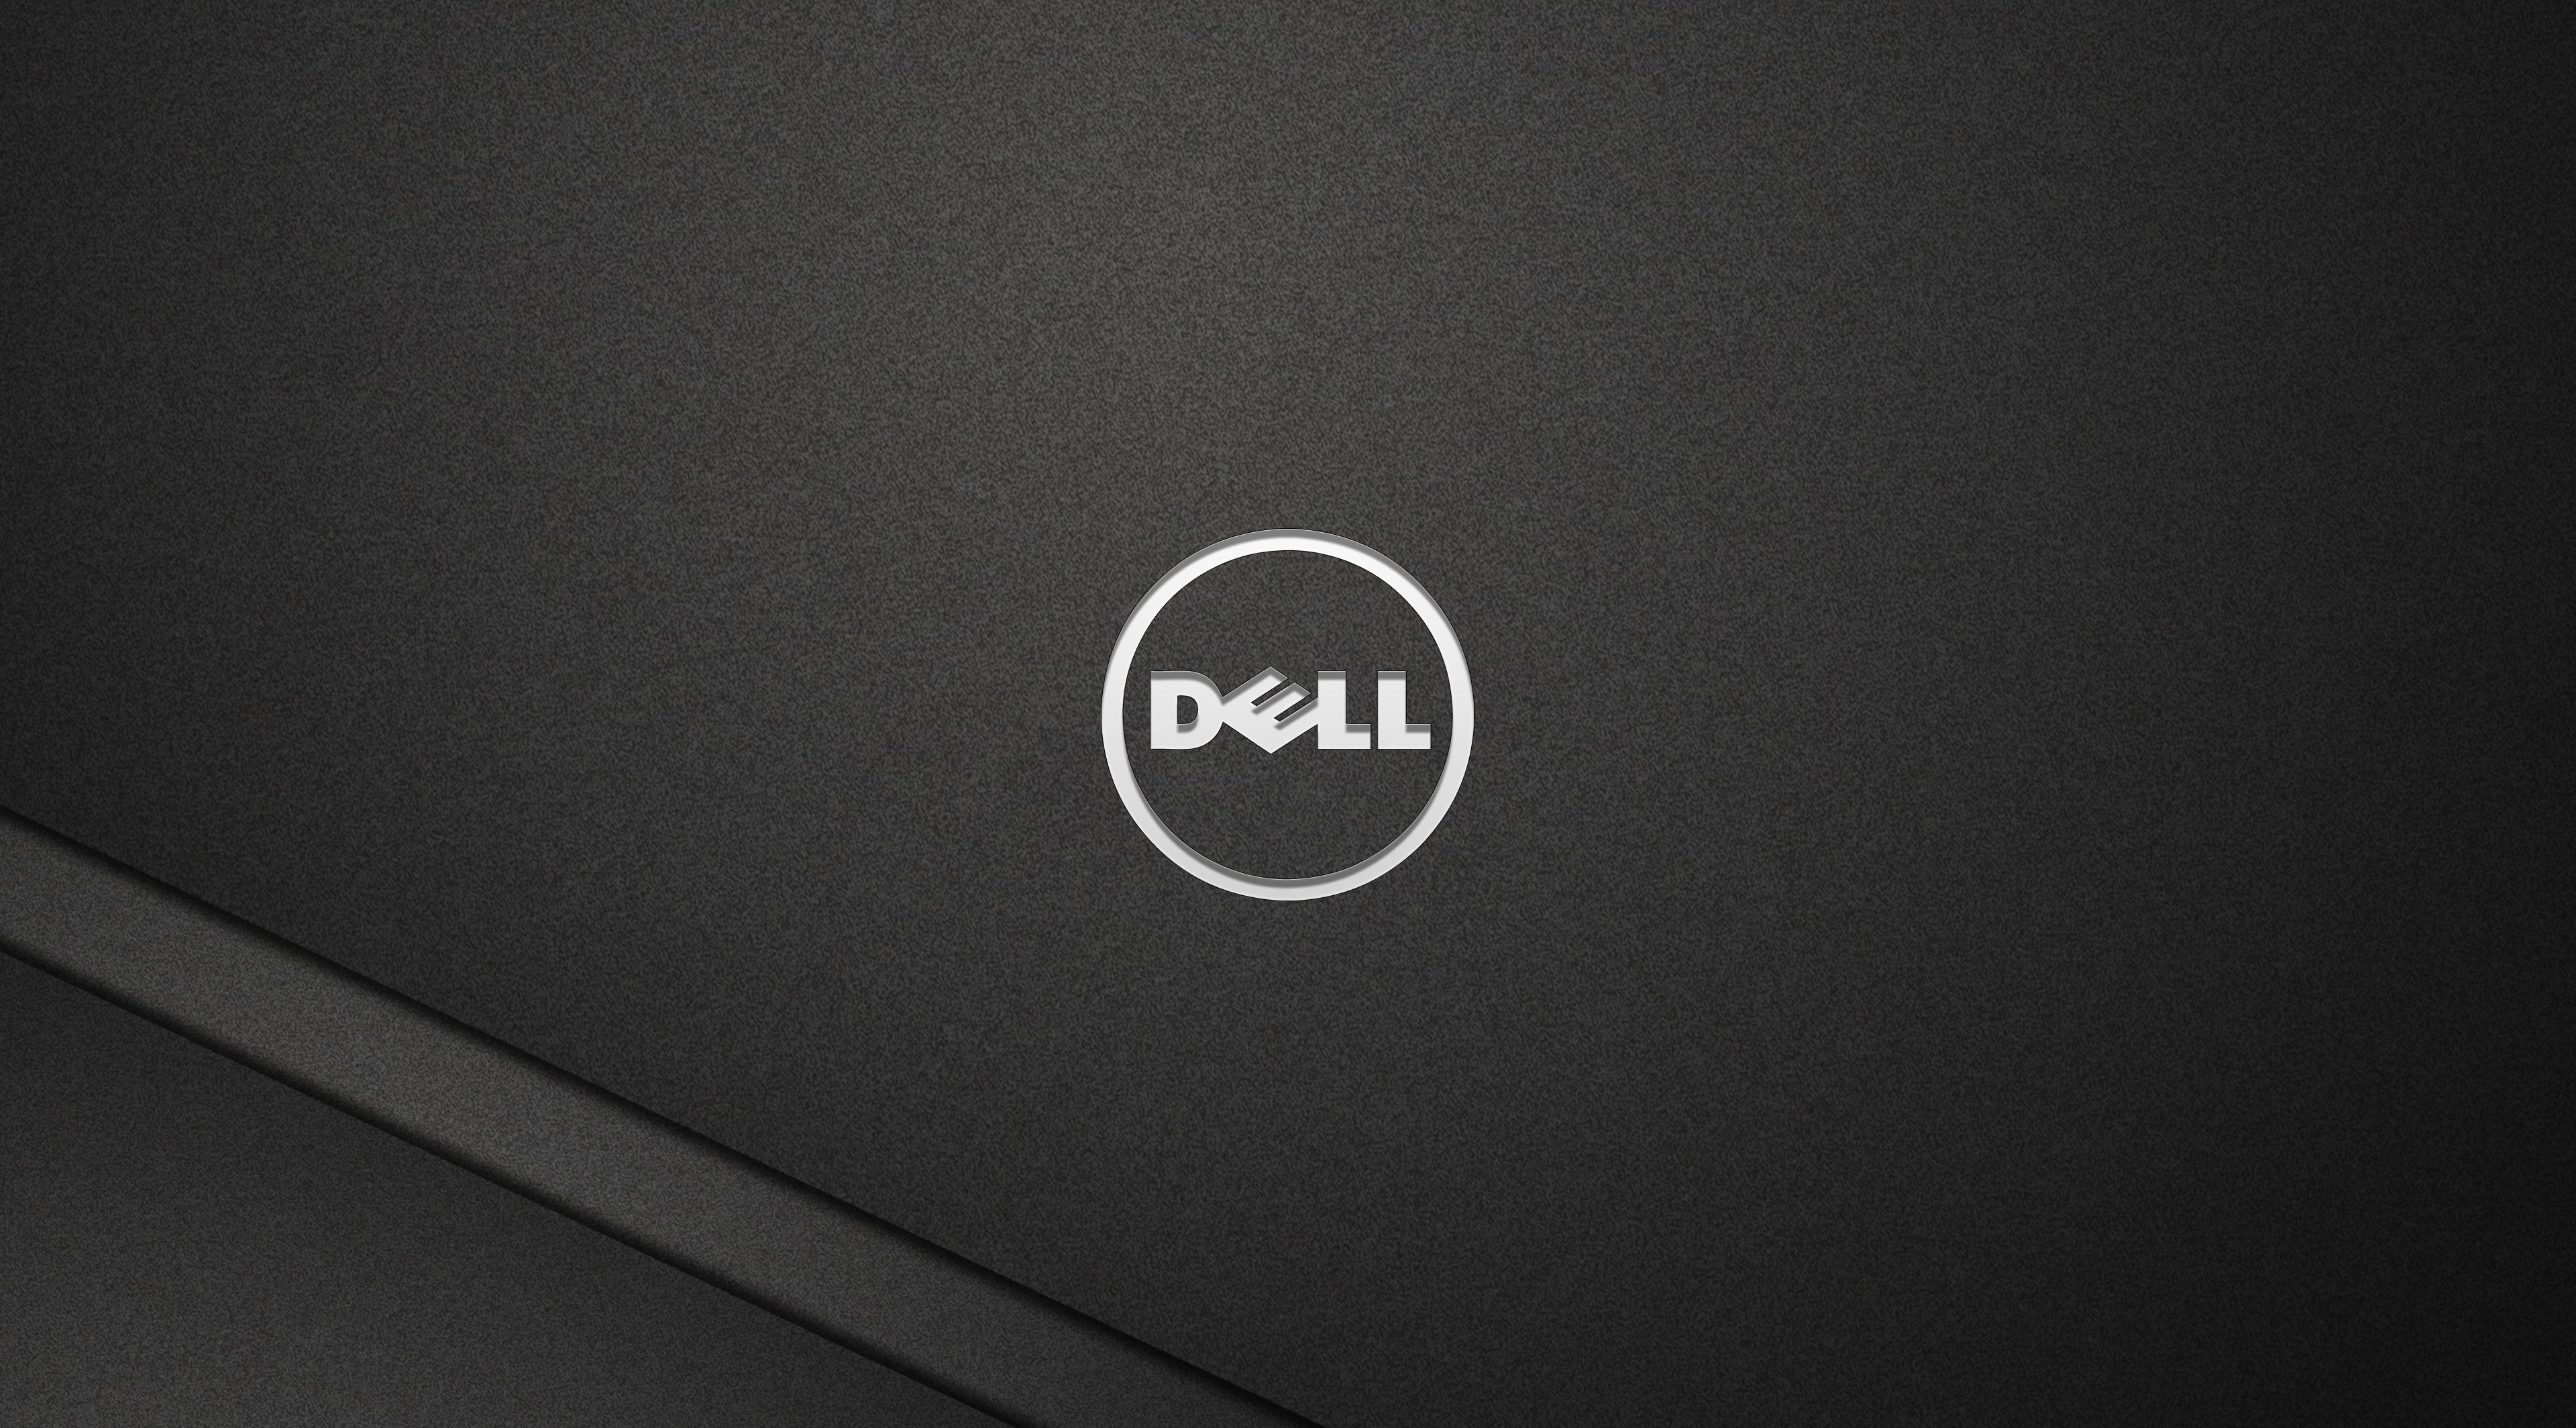 Dell Ultra HD Wallpapers - Top Free Dell Ultra HD ...